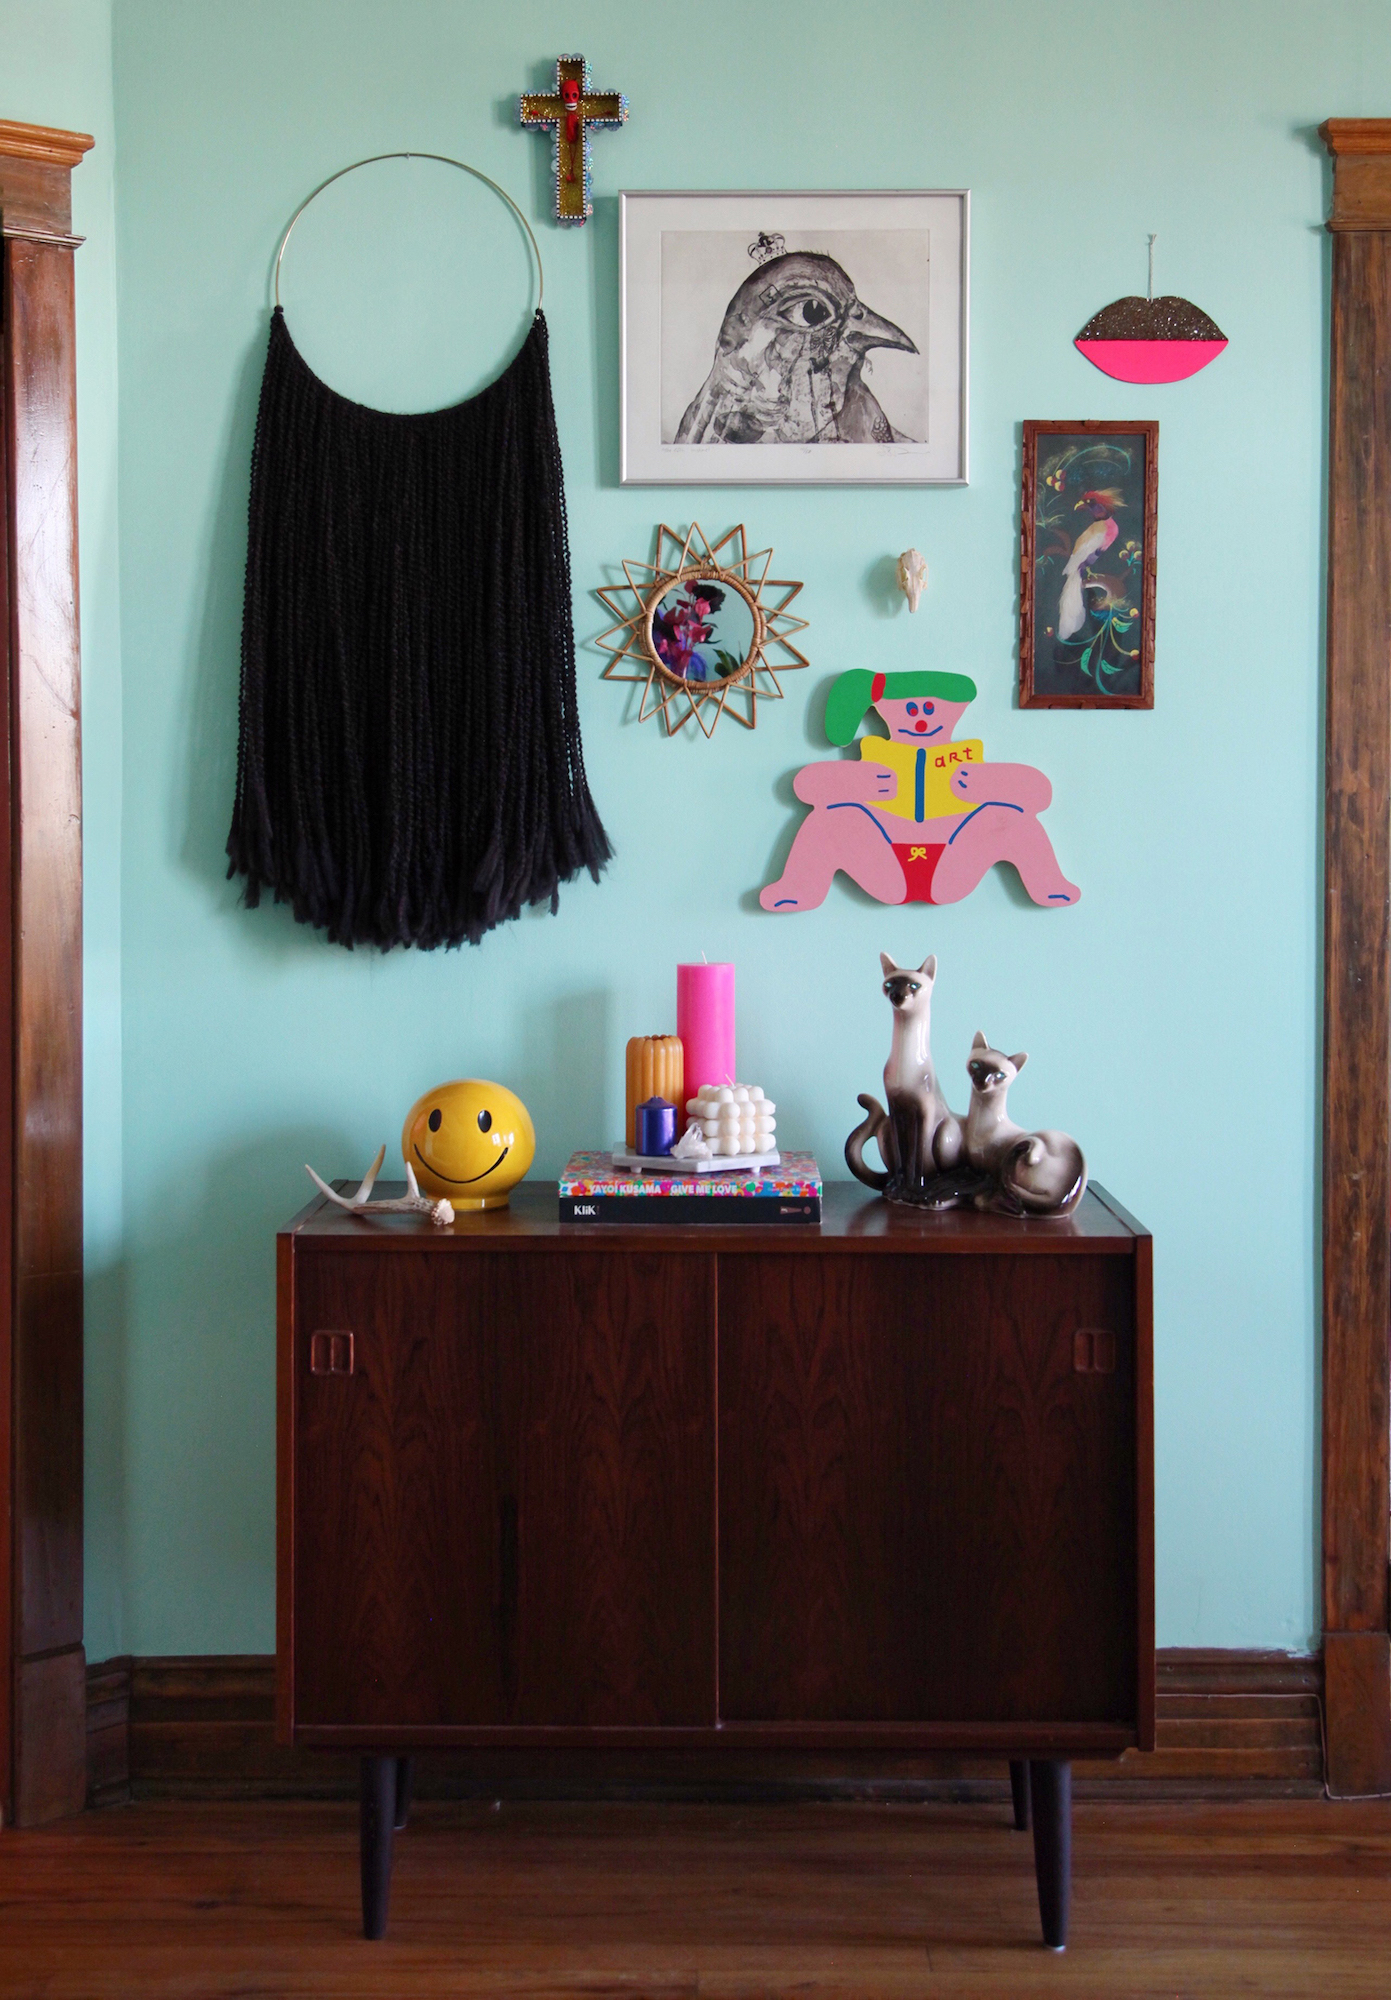 A Celebration Of Punchy Colors Amp Delightful Kitsch In